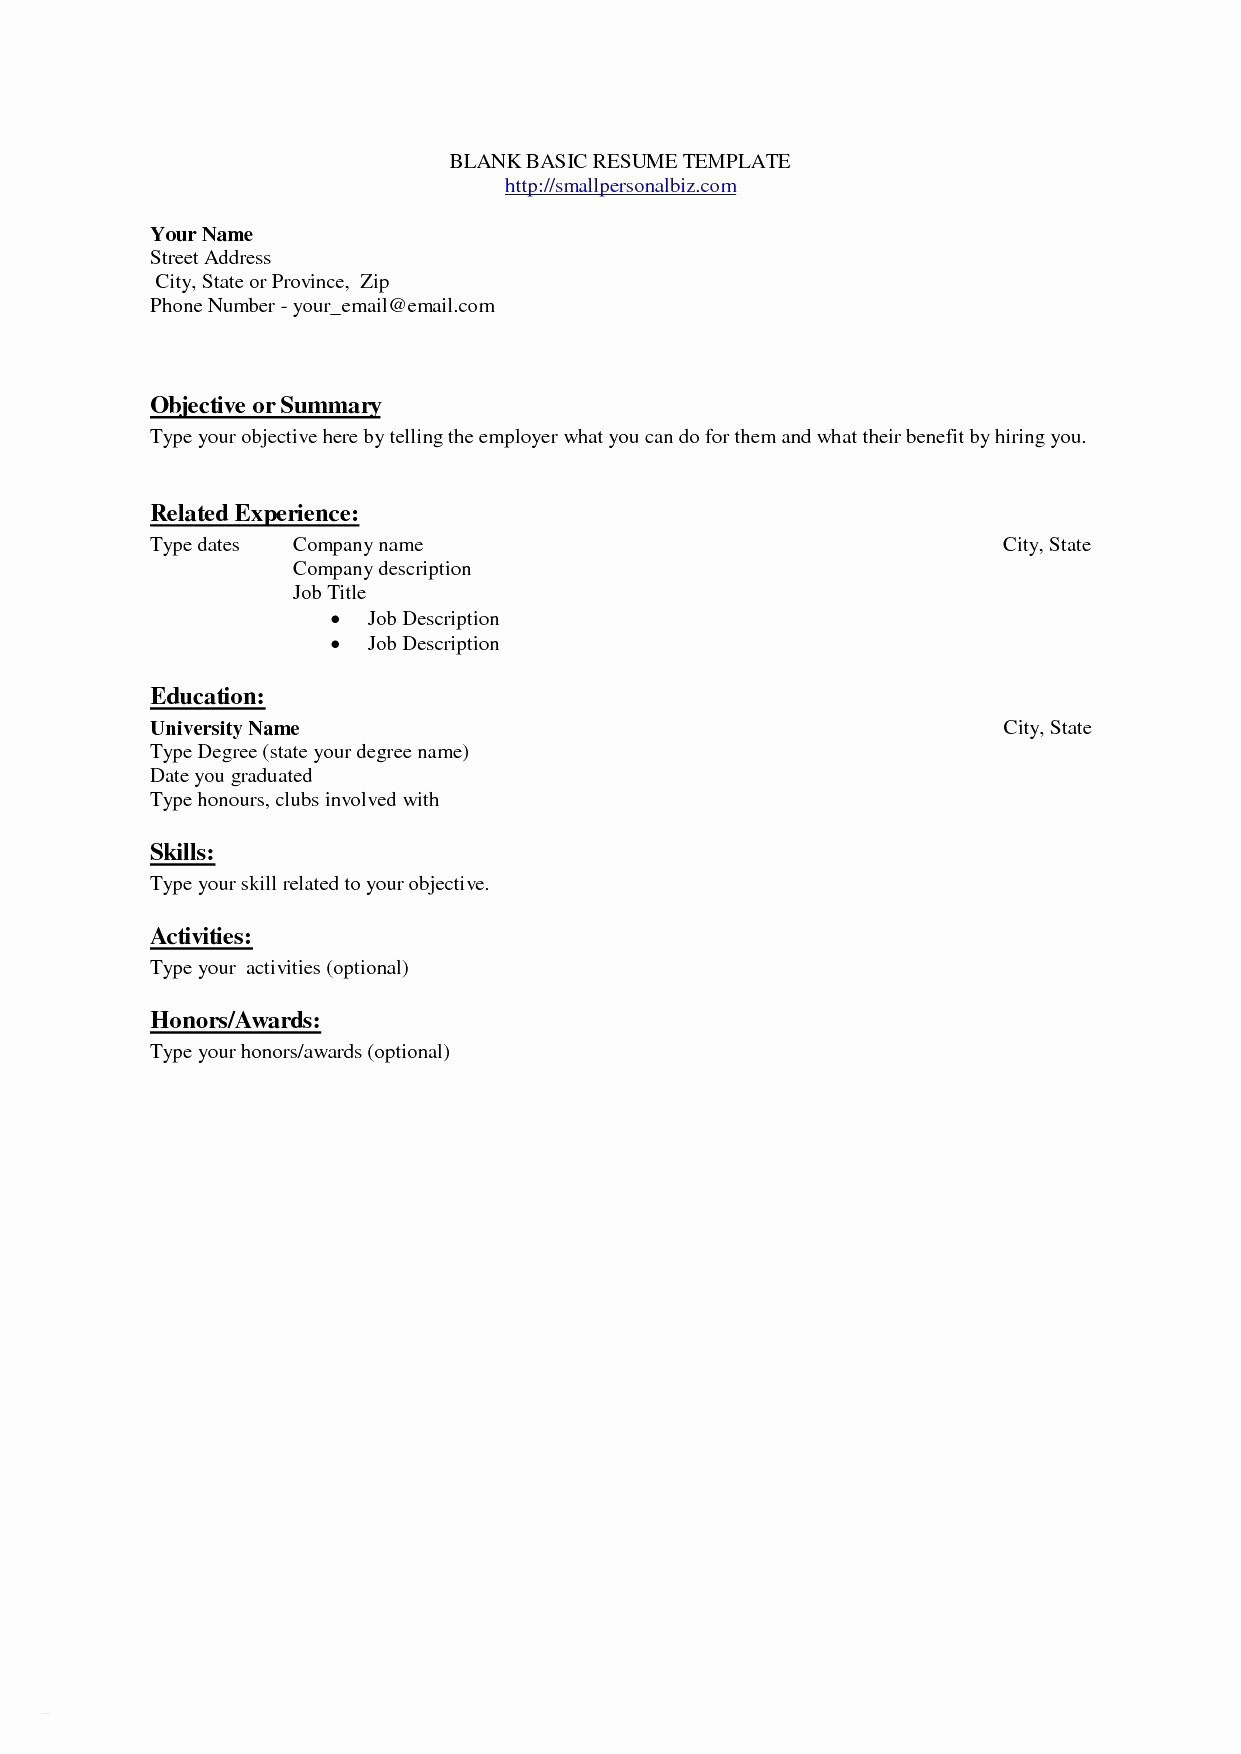 Welder Resume Objective - Welder Resume Template Best Welder Resume Objective Inspirational